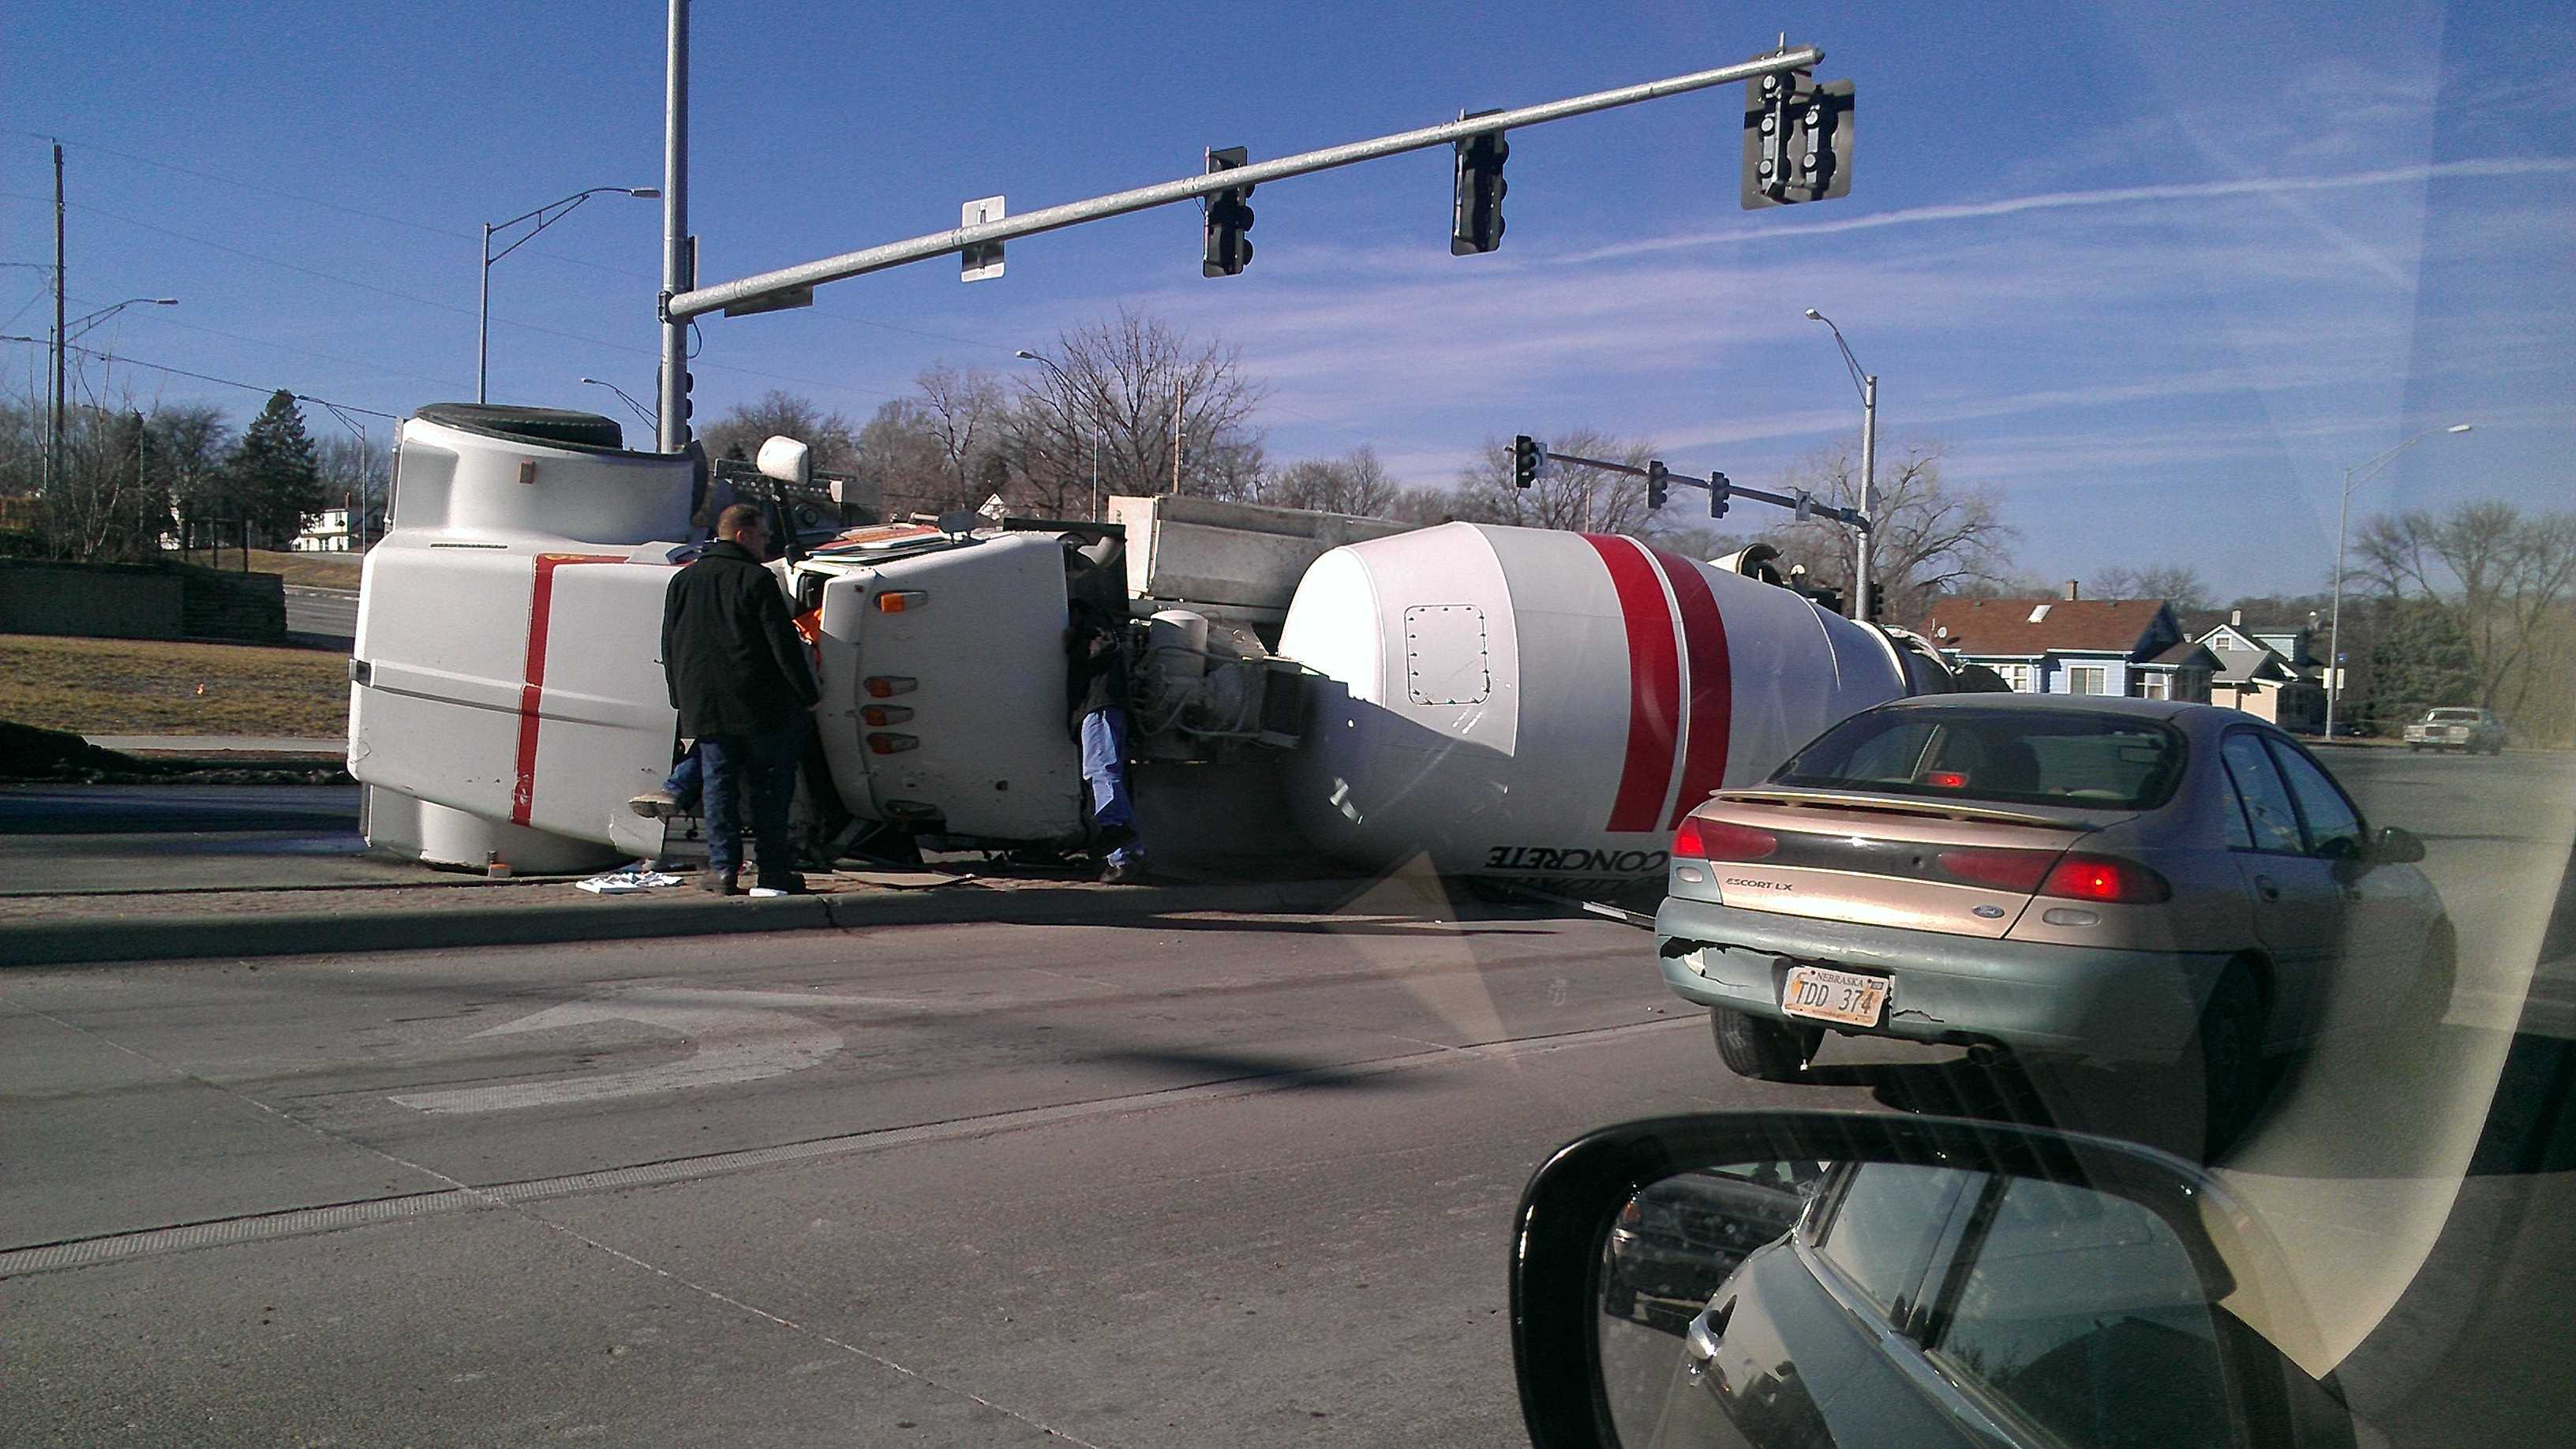 PHOTO: 13th street and missouri ax.jpg